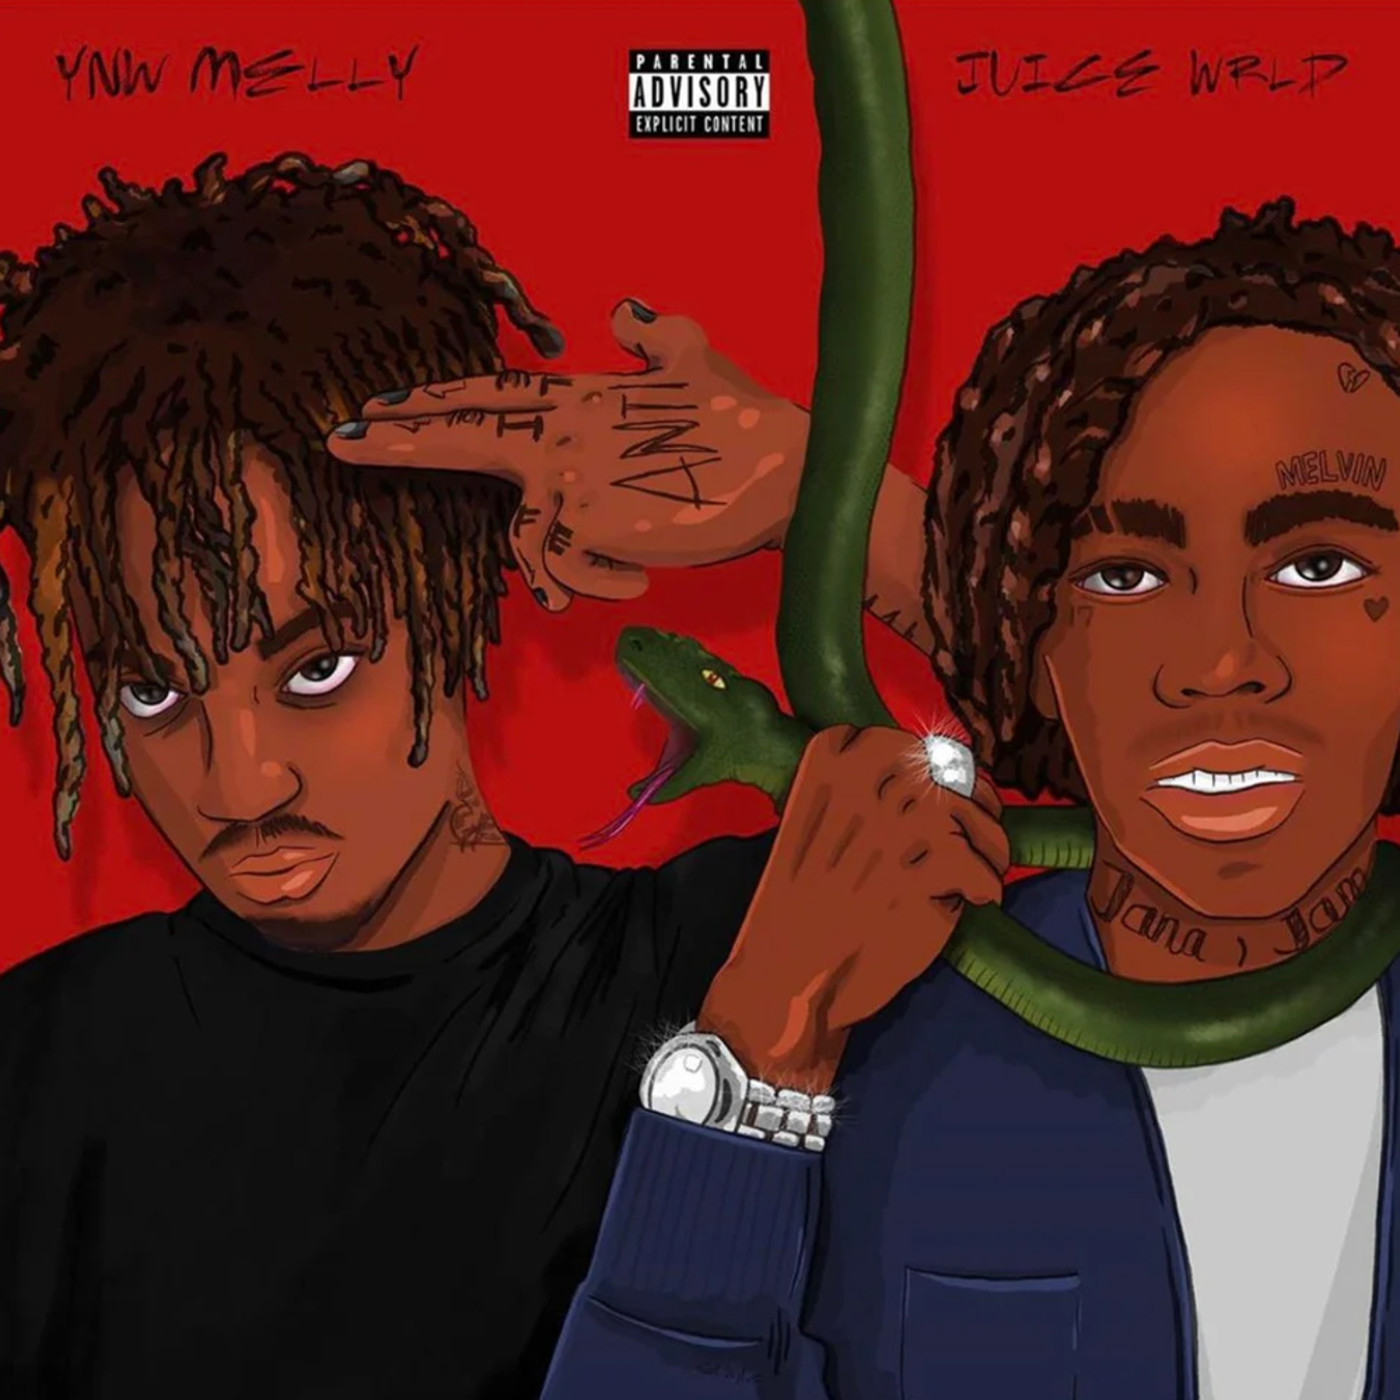 Watch The New Video For Ynw Melly S Suicidal Remix F Juice Wrld